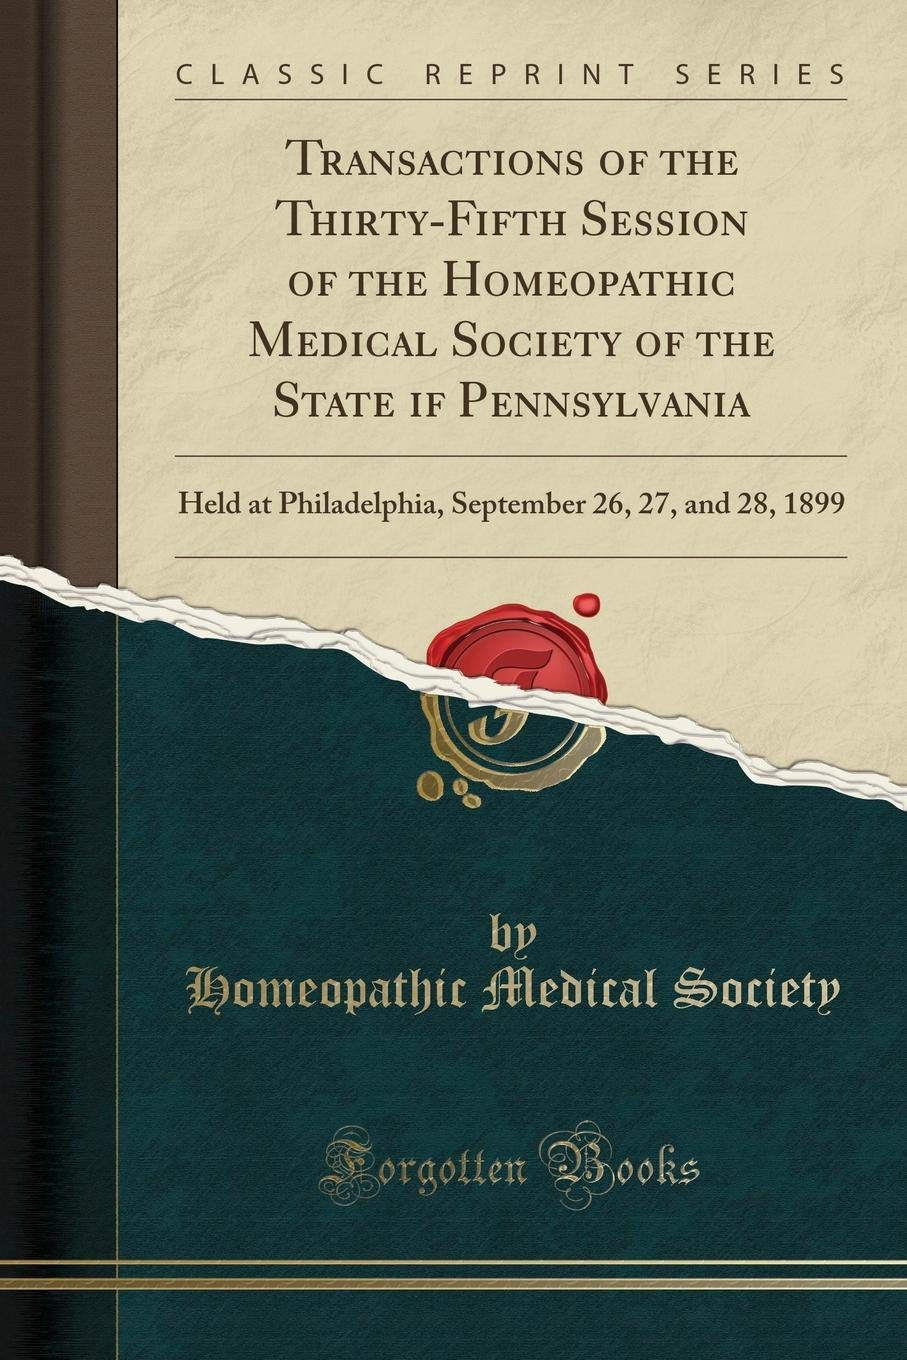 Transactions of the Thirty-Fifth Session of the Homeopathic Medical Society of the State if Pennsylvania: Held at Philadelphia, September 26, 27, and 28, 1899 (Classic Reprint) pdf epub